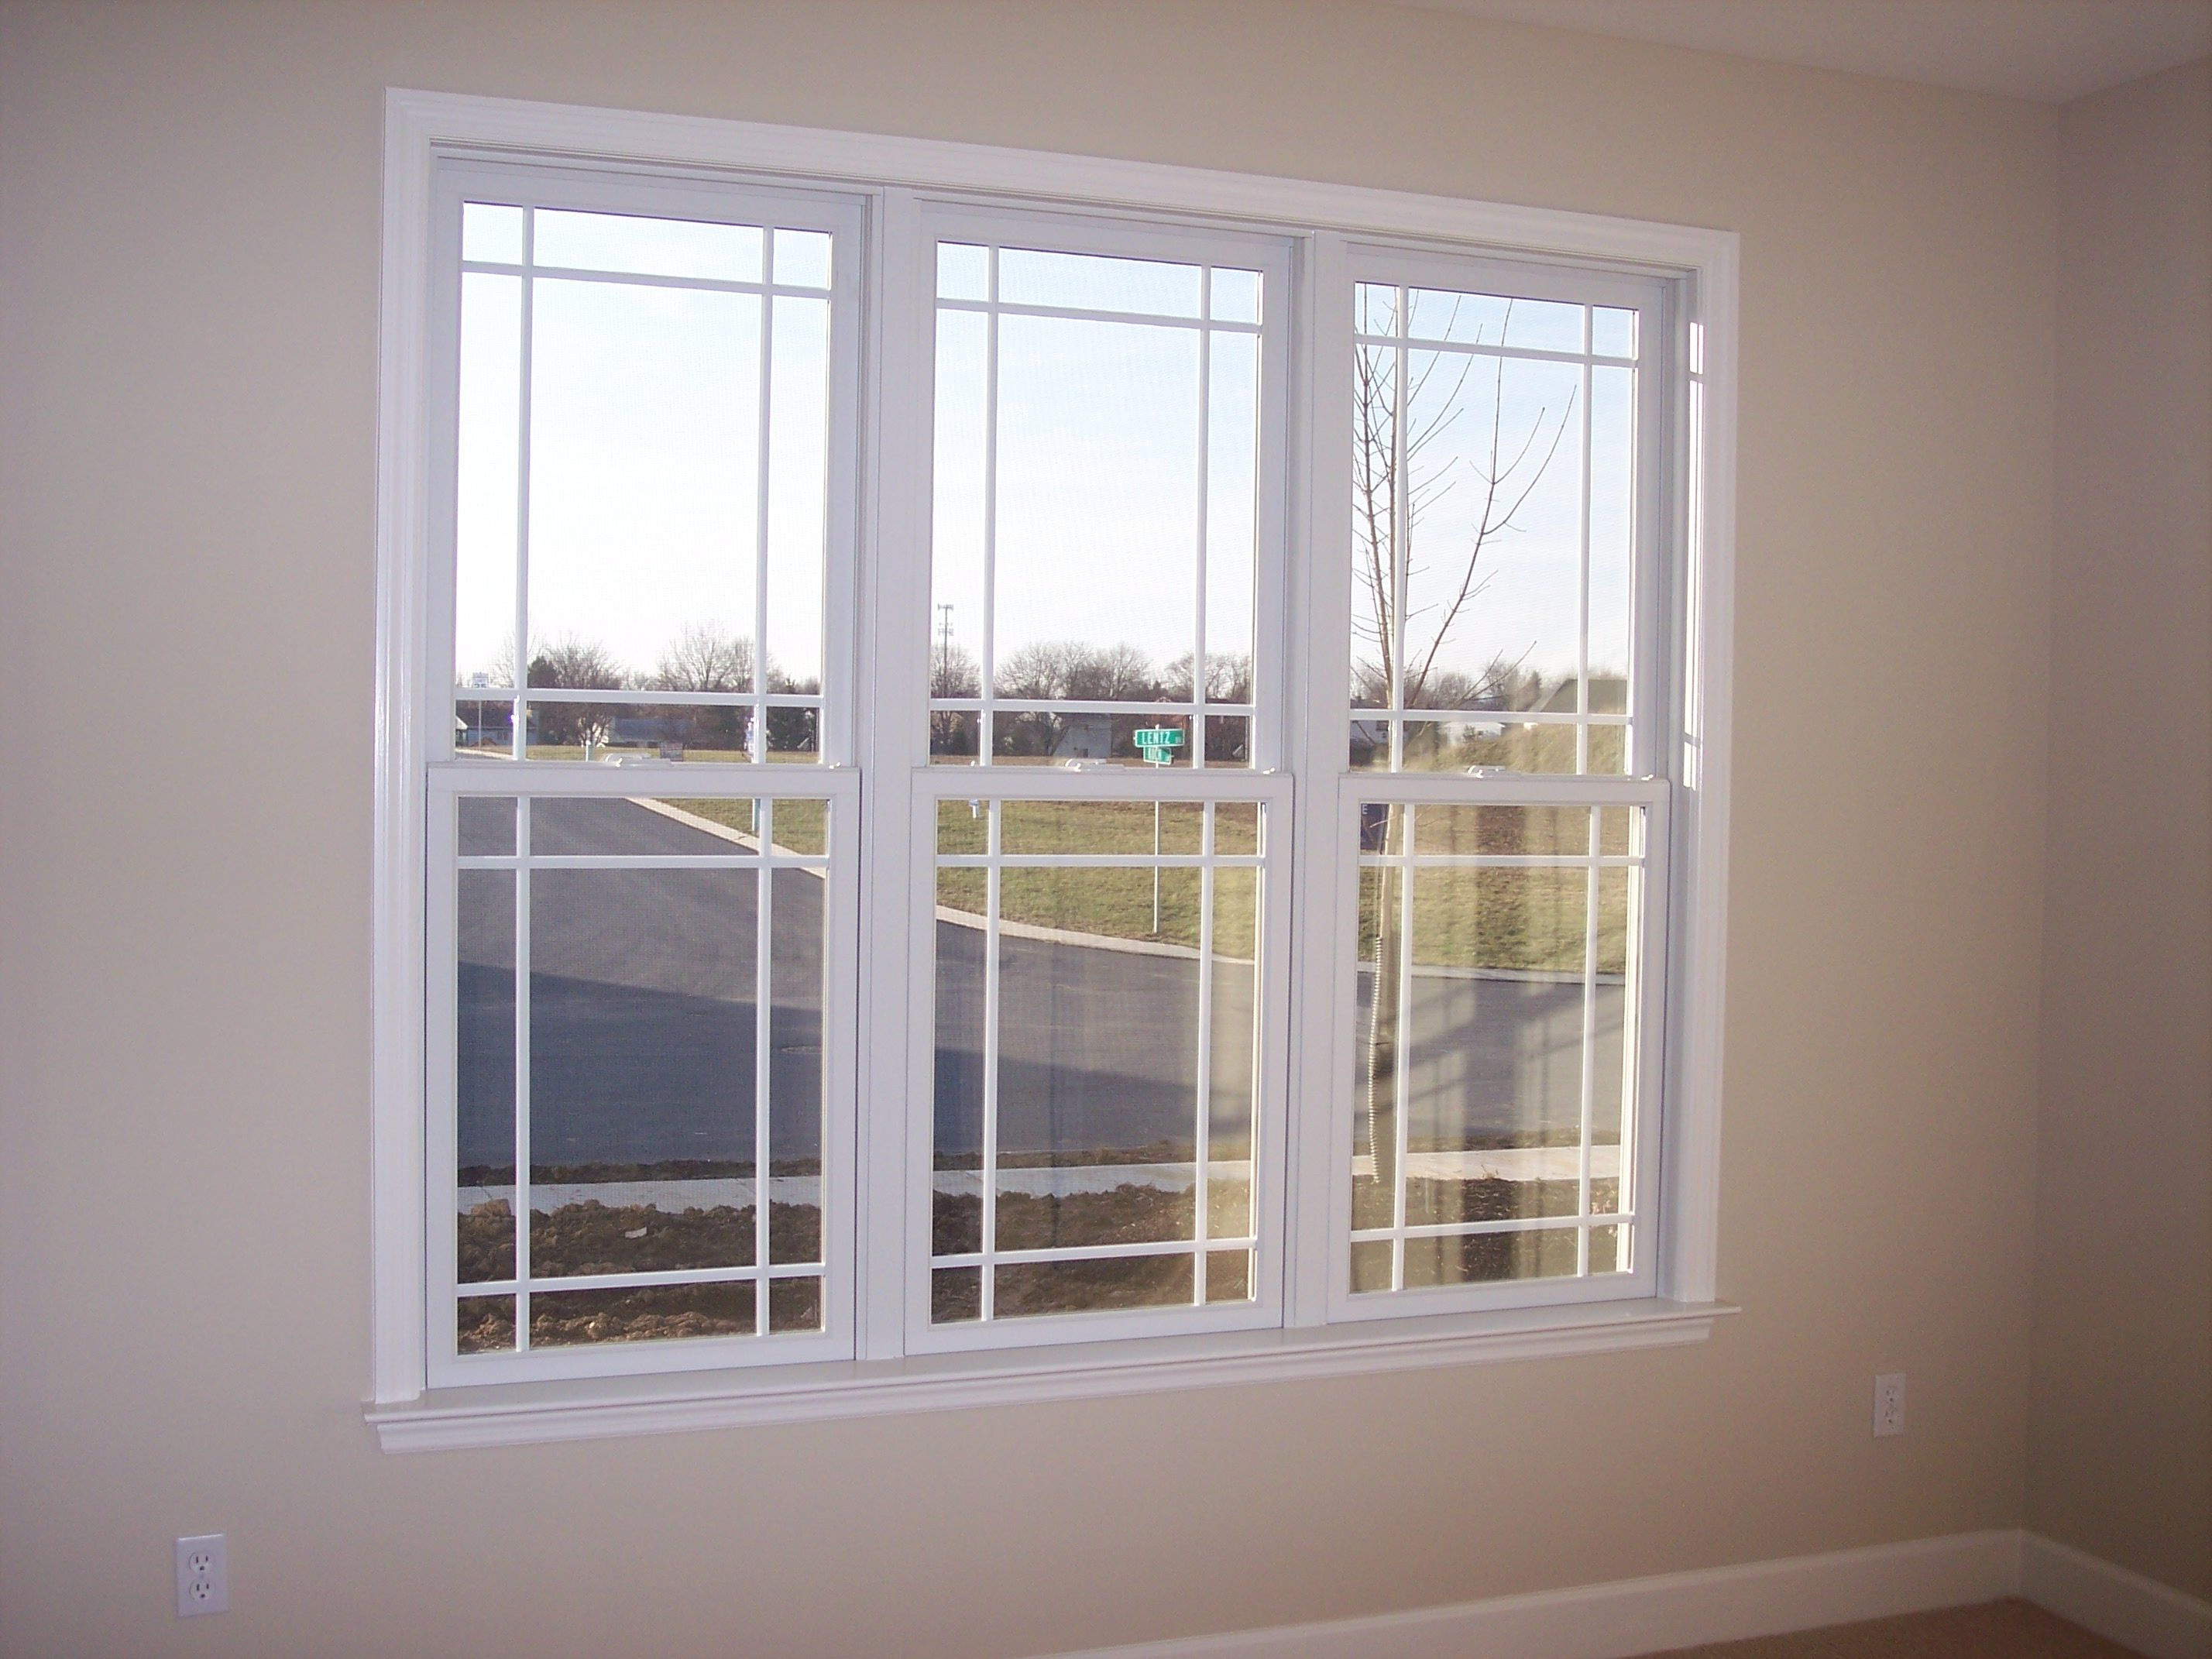 Living Room Window Designs Large Windows Window Designs For Homes Window Pictures Window